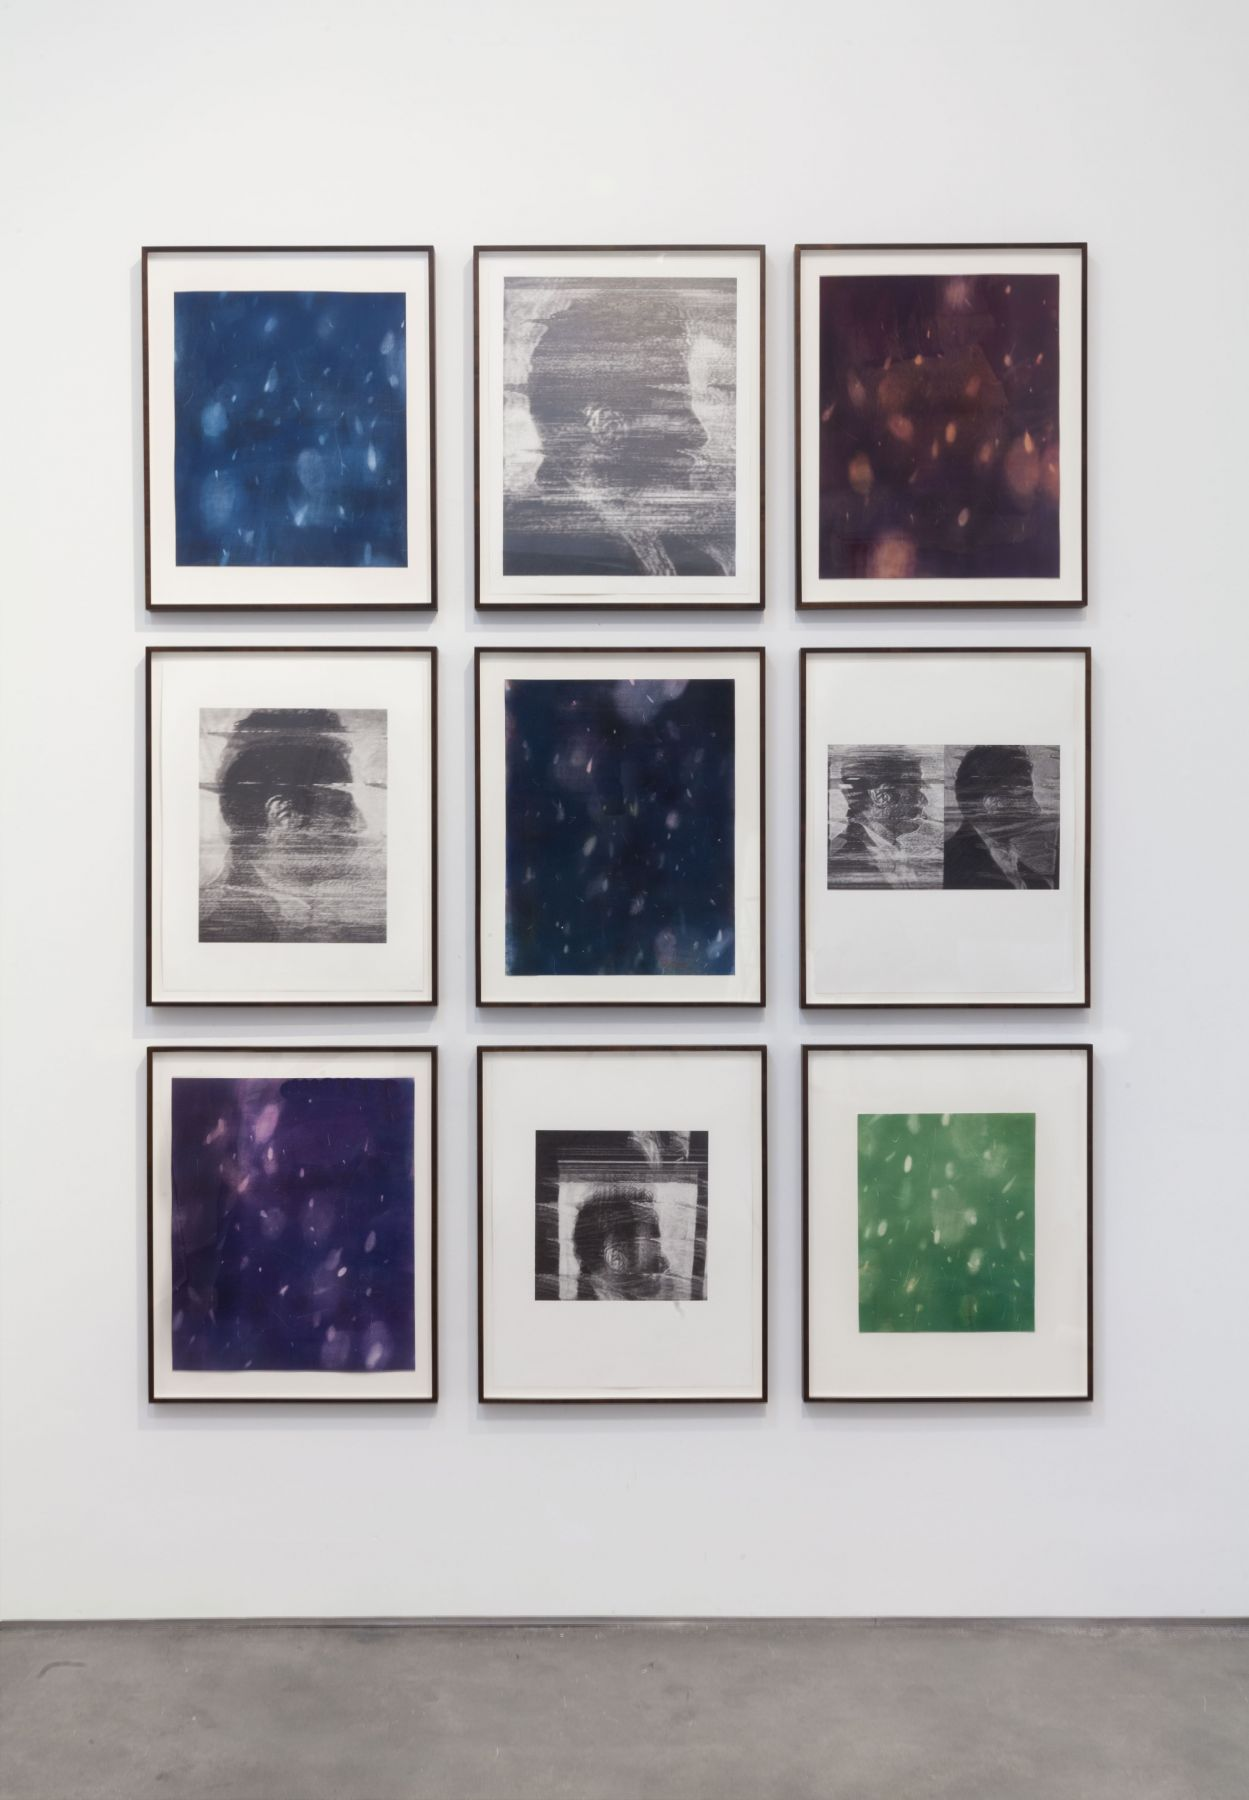 Snow (Installation View), Marianne Boesky Gallery, 2014